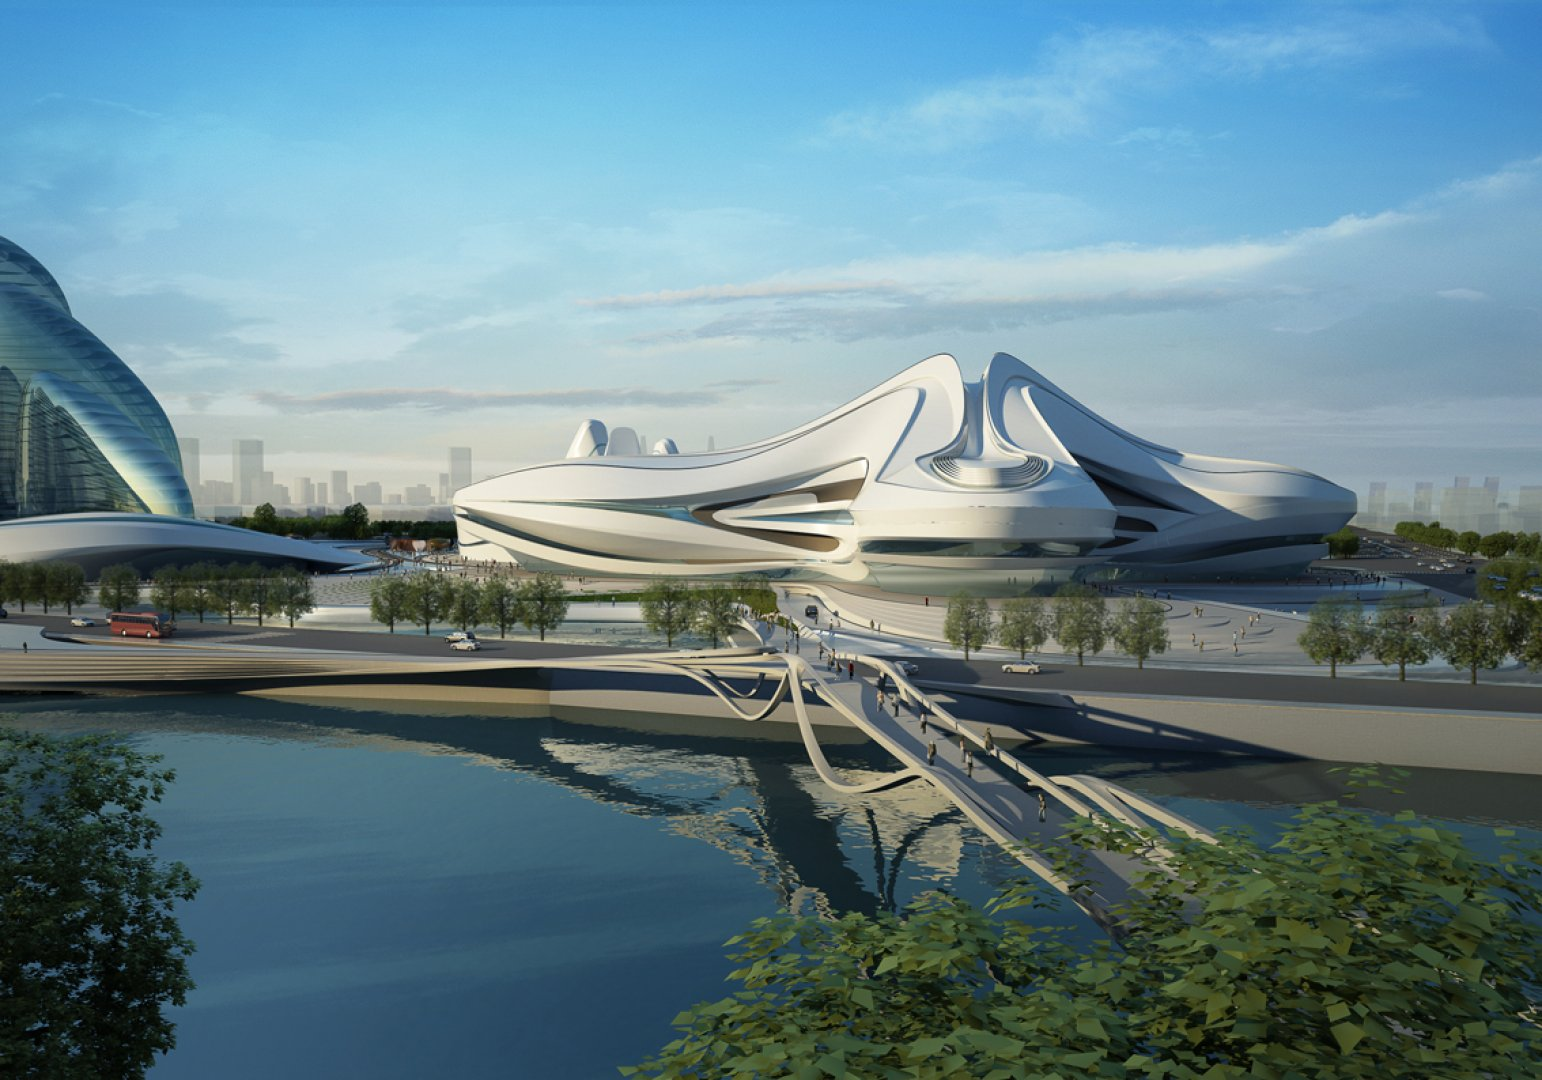 Zaha hadid quotes about art quotesgram for Architecture zaha hadid